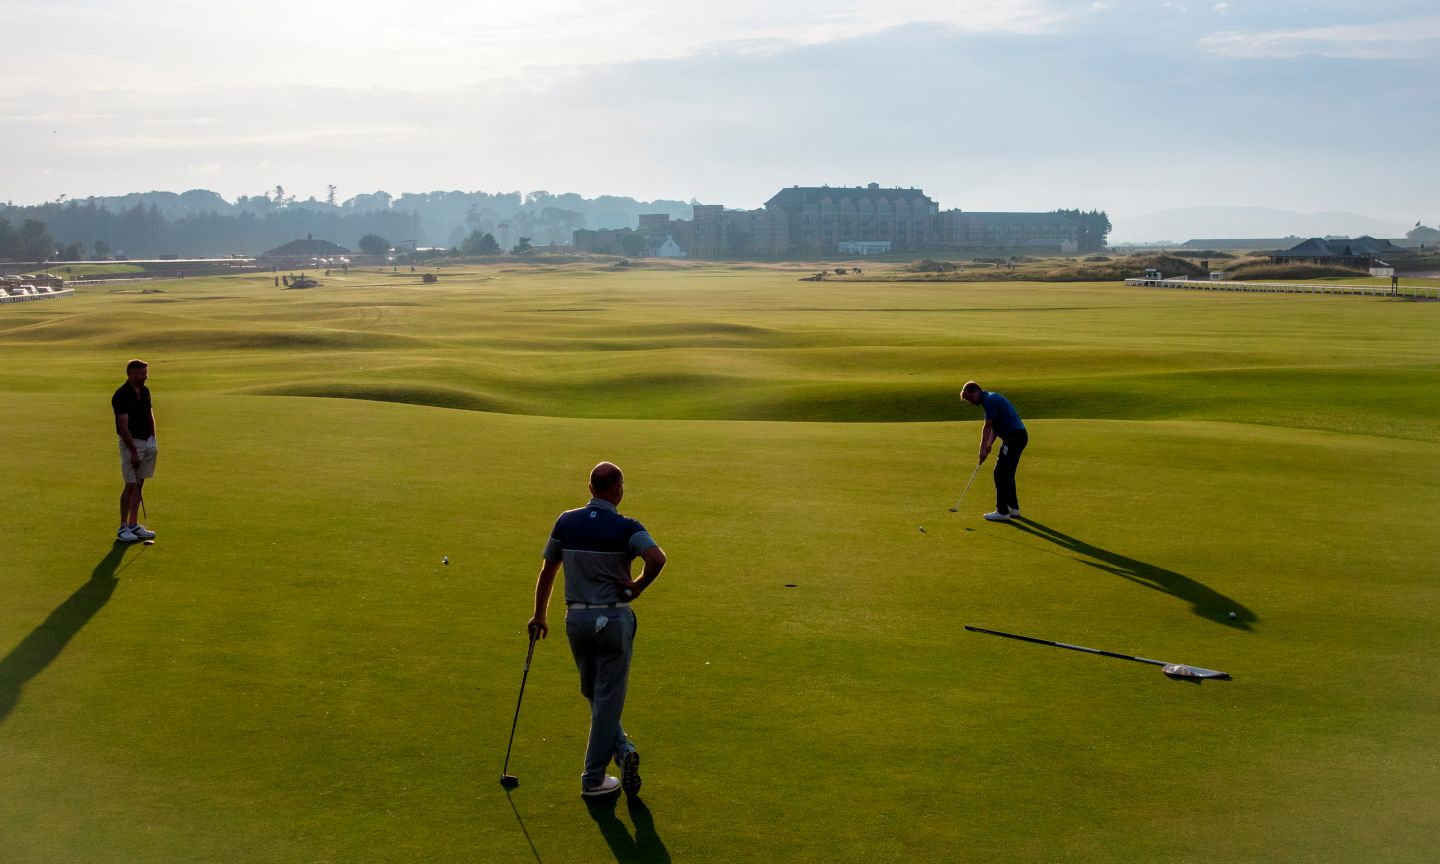 Golfers playing the Old Course, St Andrews